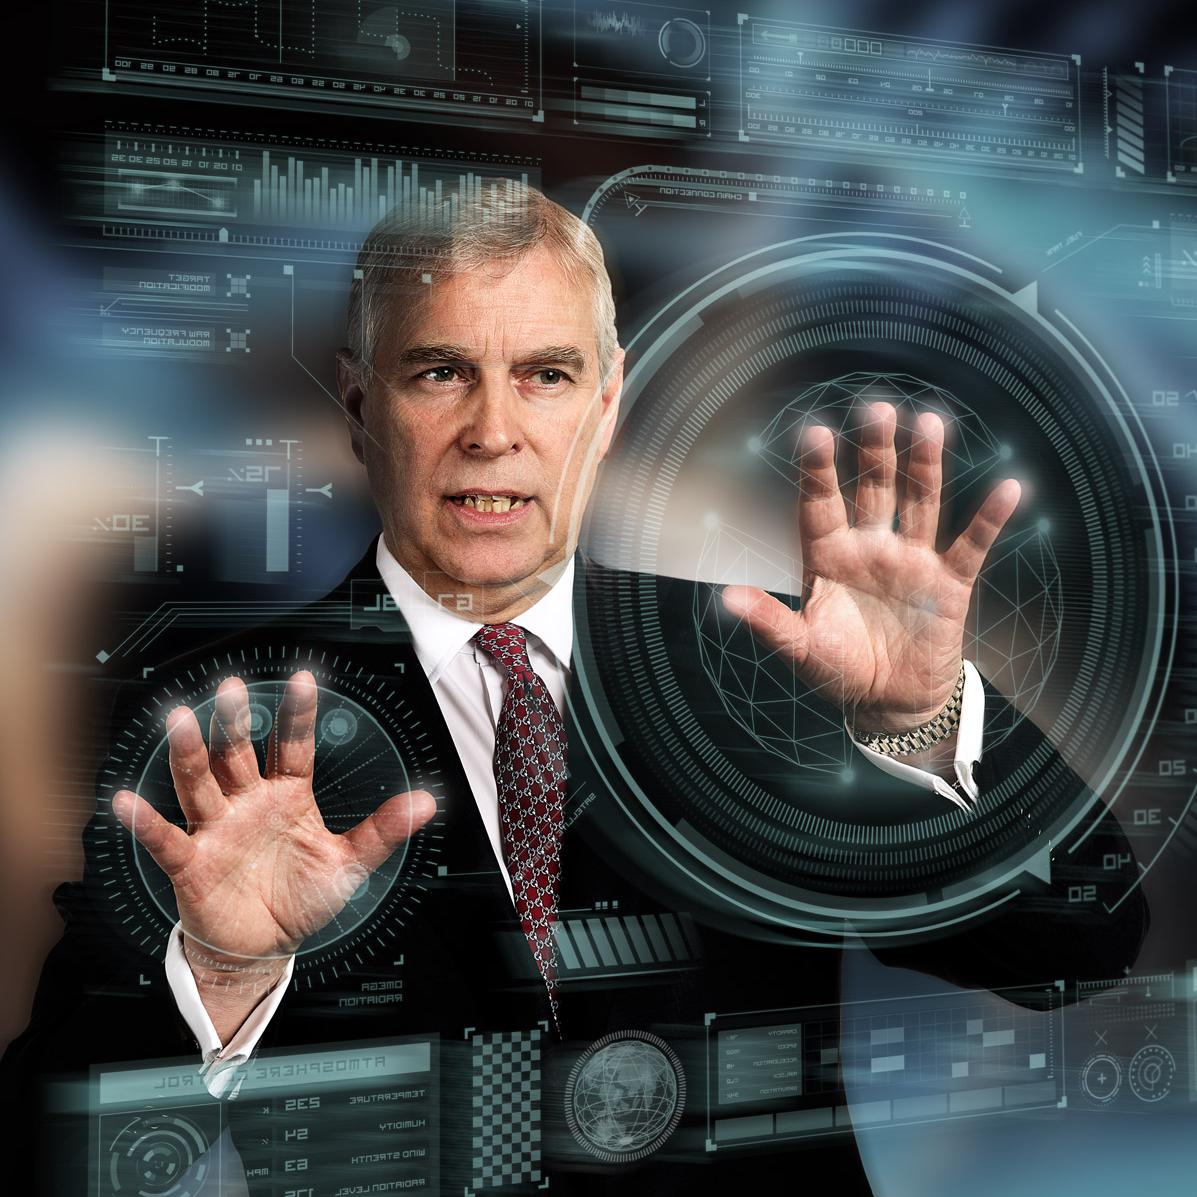 Portrait of HRH Prince Andrew by London photographer Julian Hanford